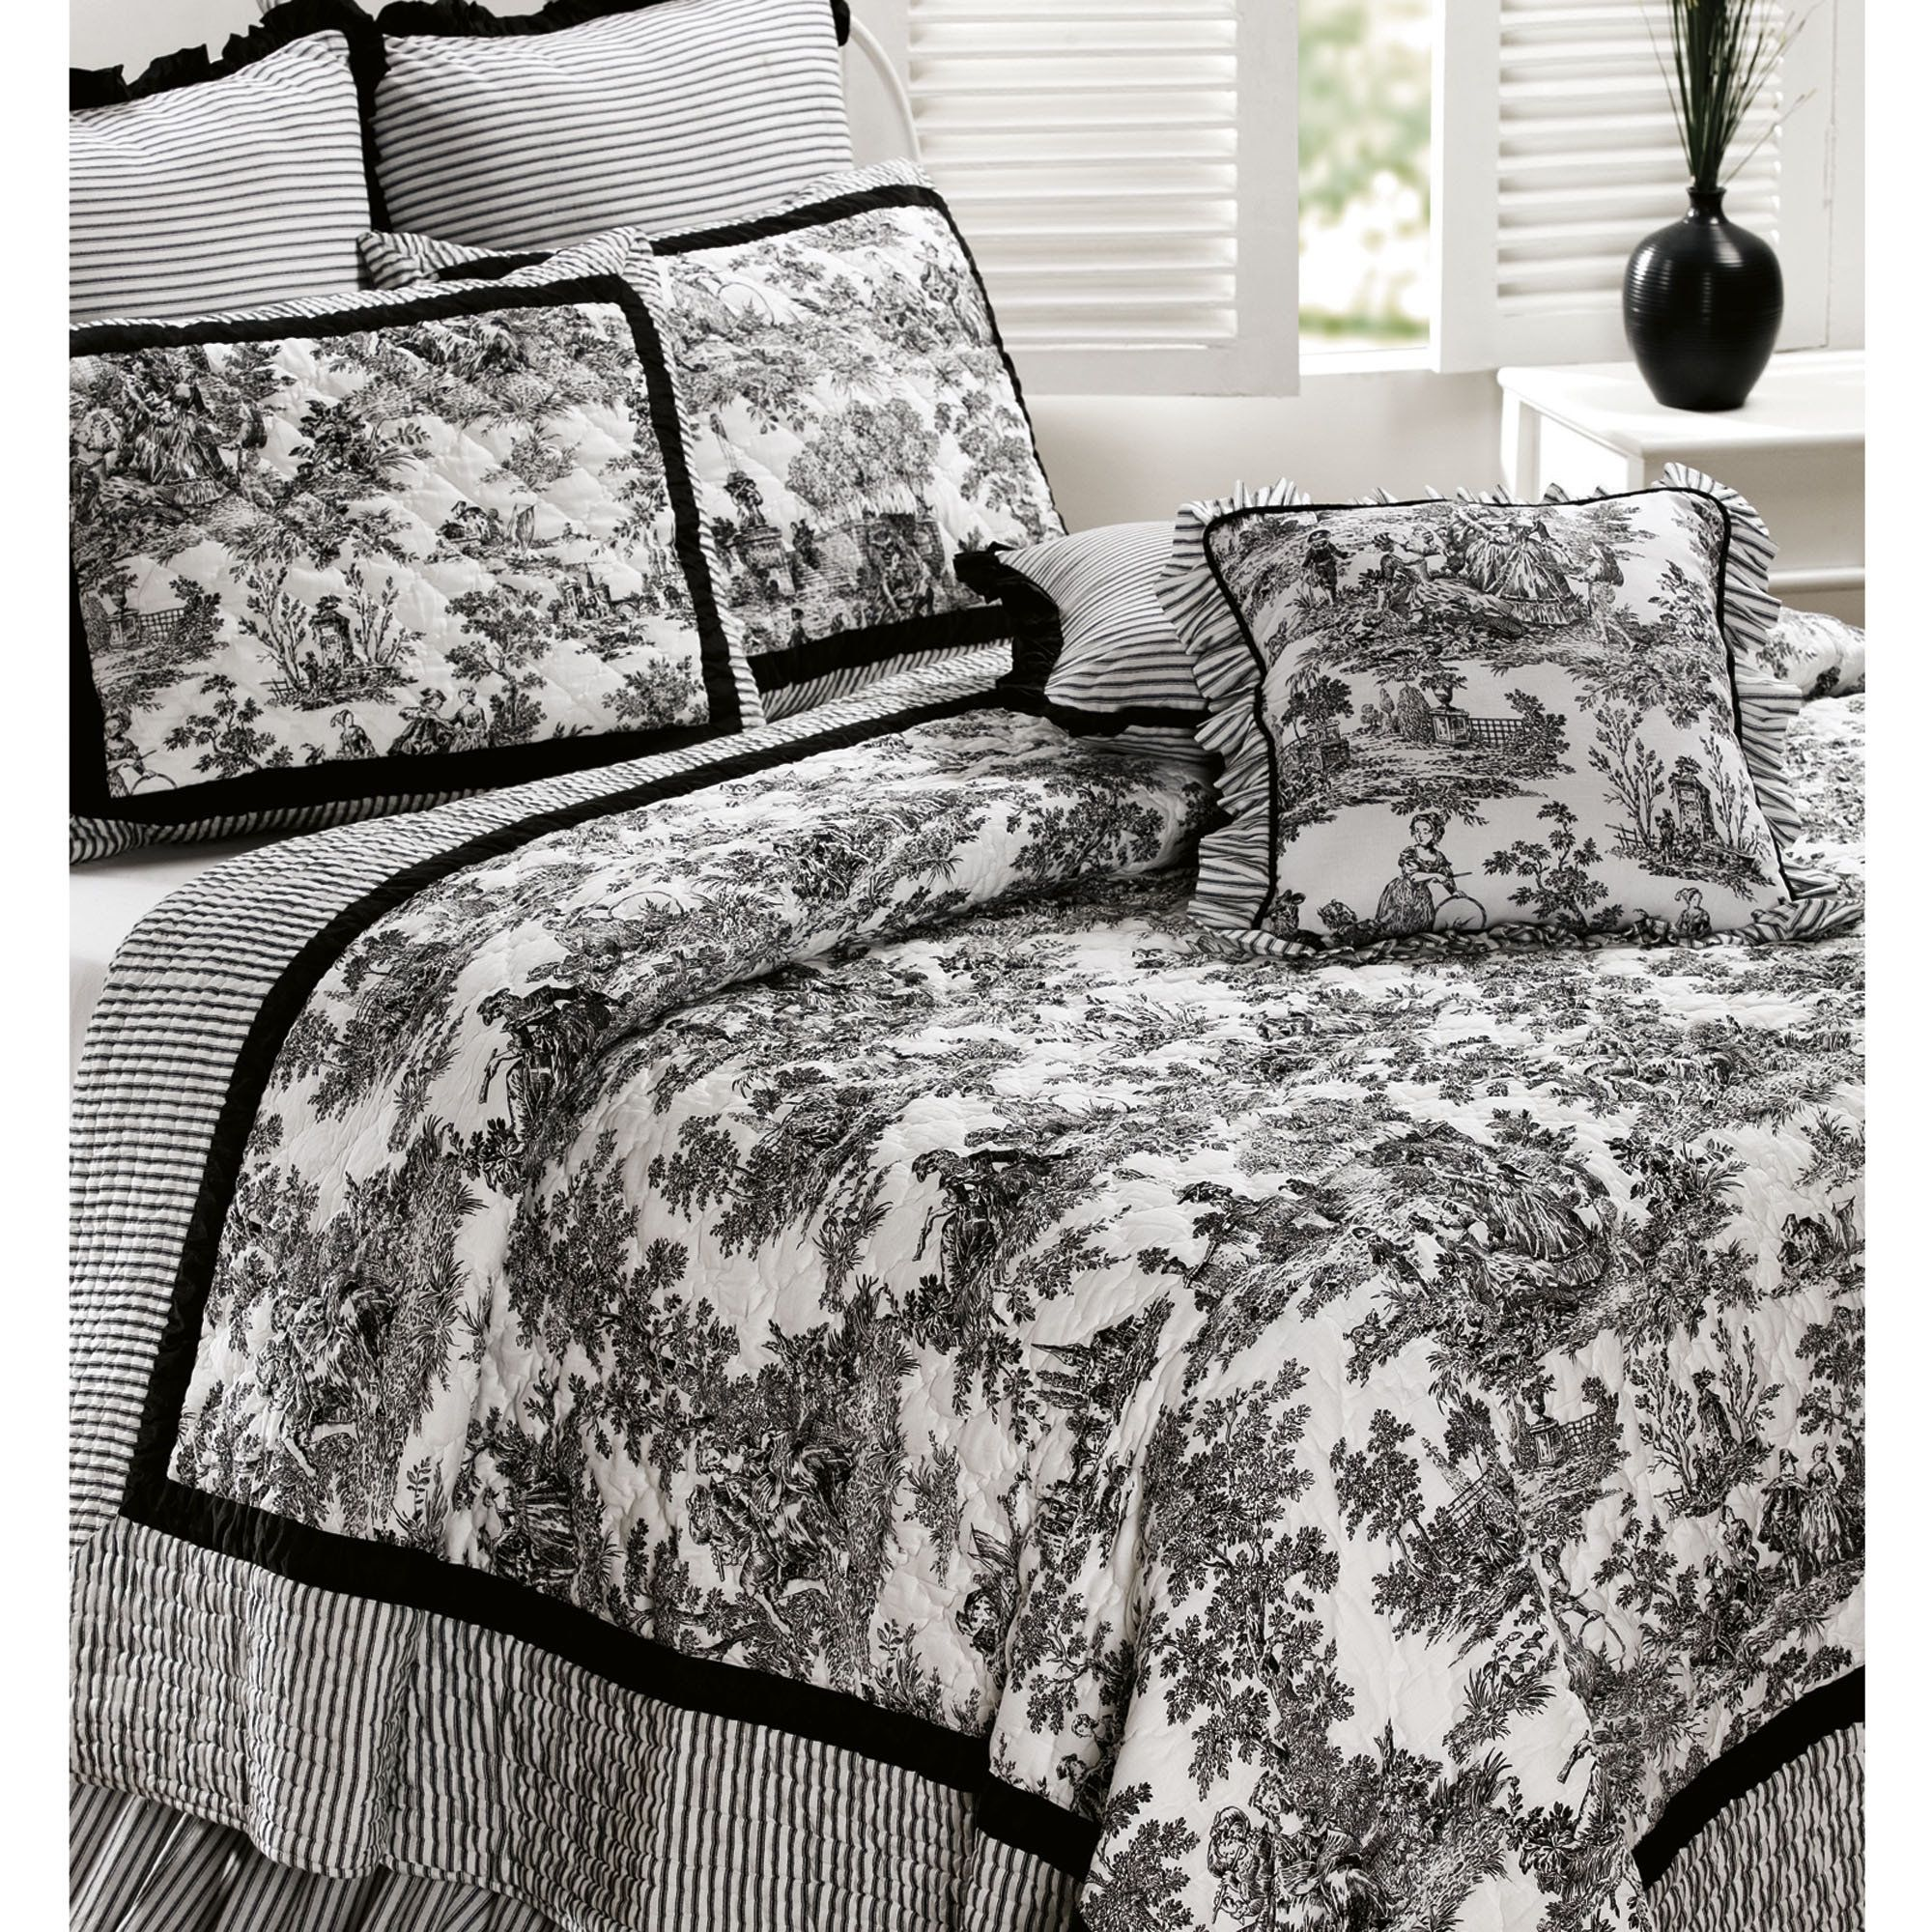 Bedroom Decorating Ideas Totally Toile: Toile De Jouy Cotton Quilt Bedding